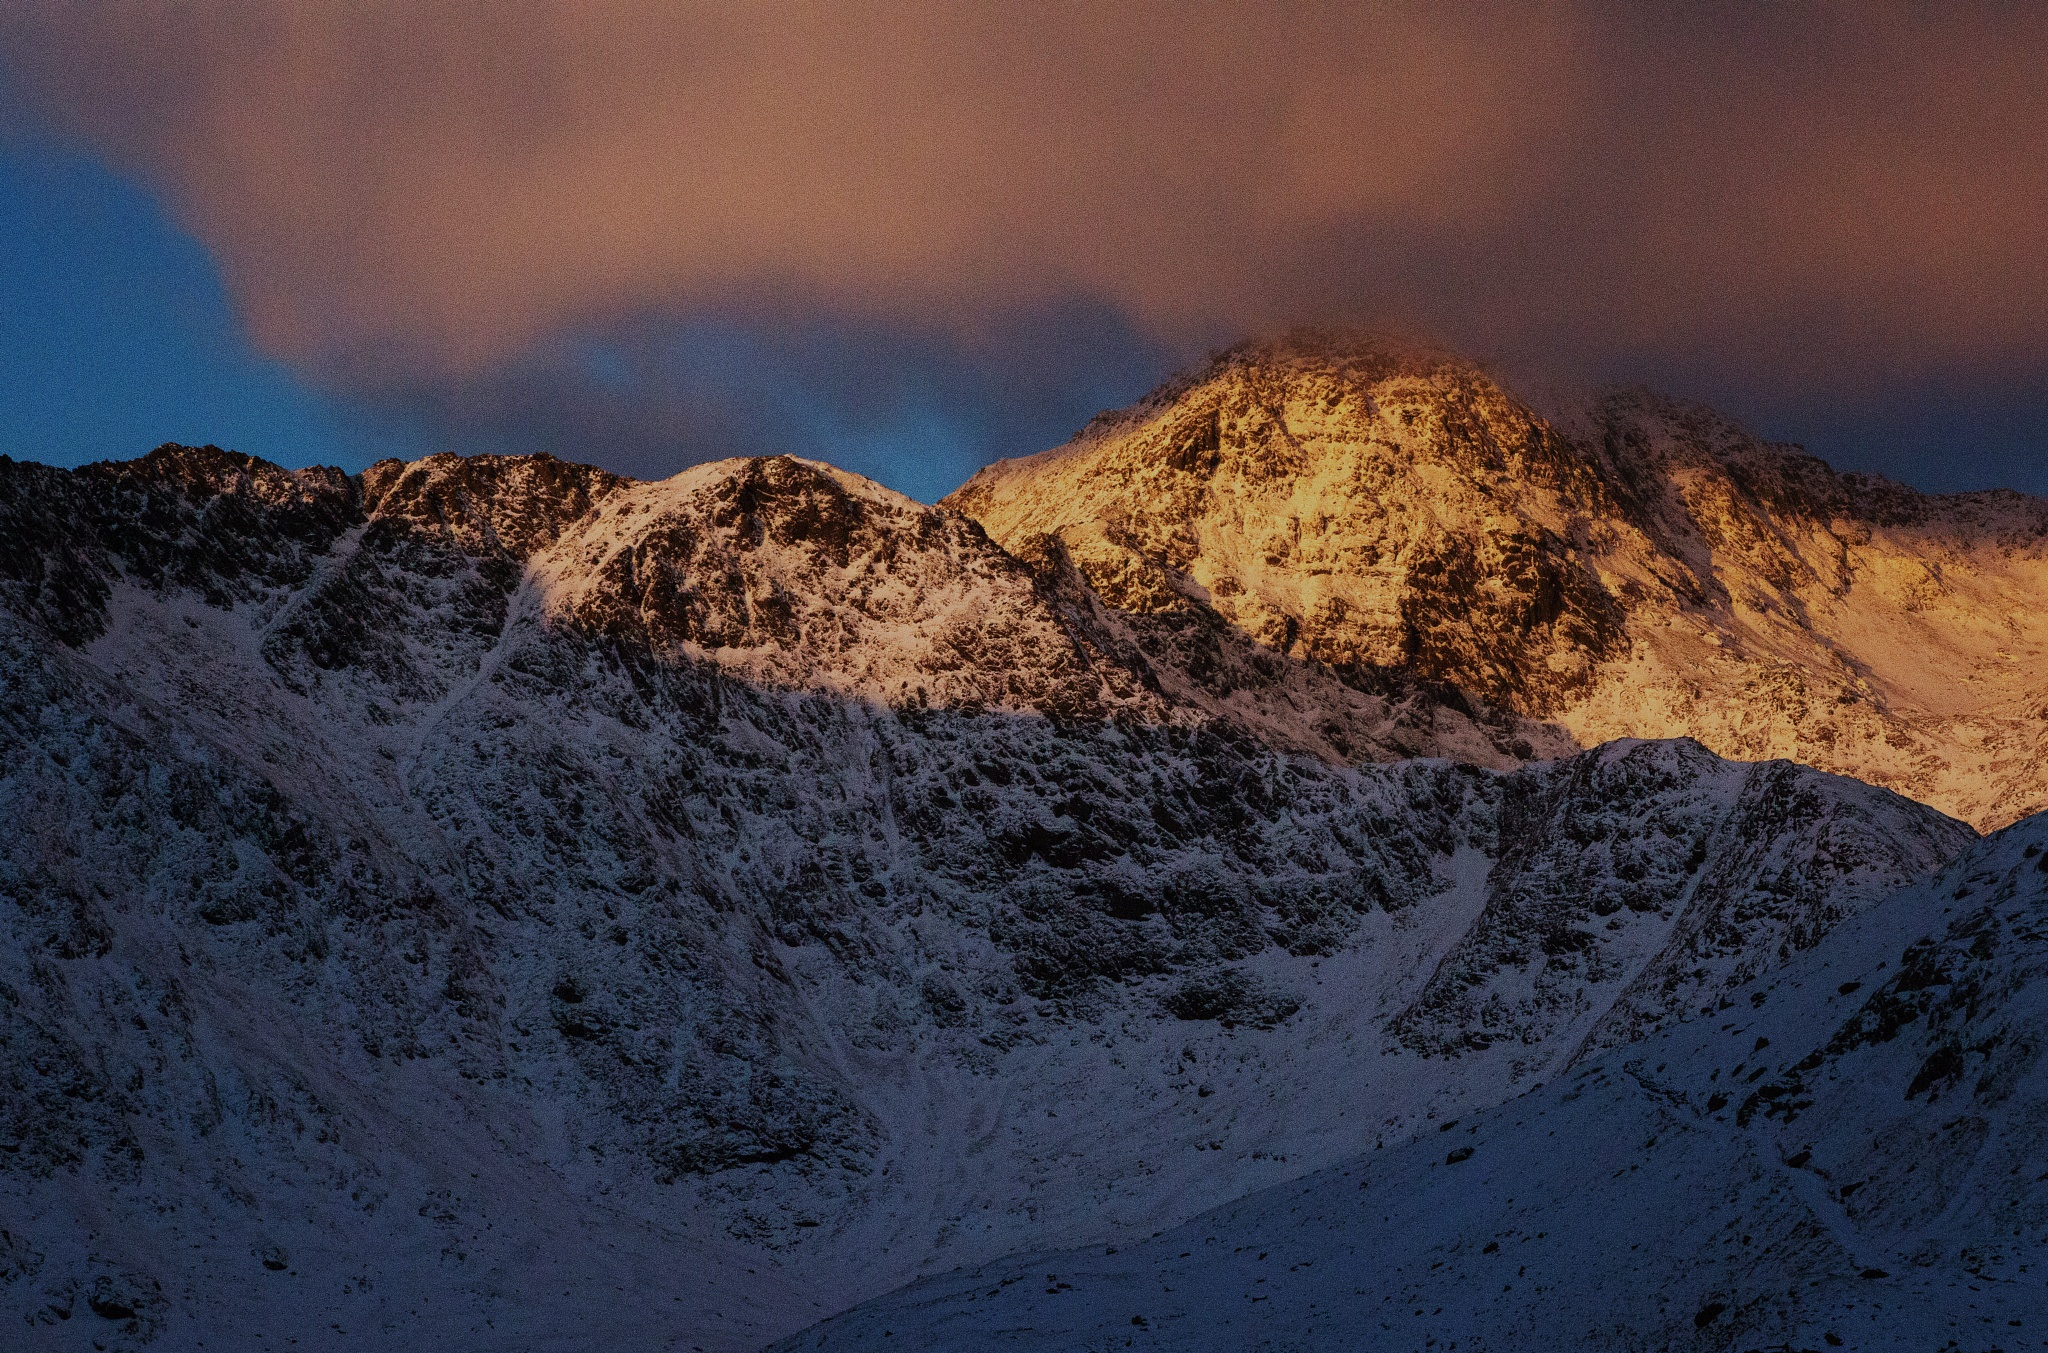 Snowdon in early morning lght by Gordon Dryden